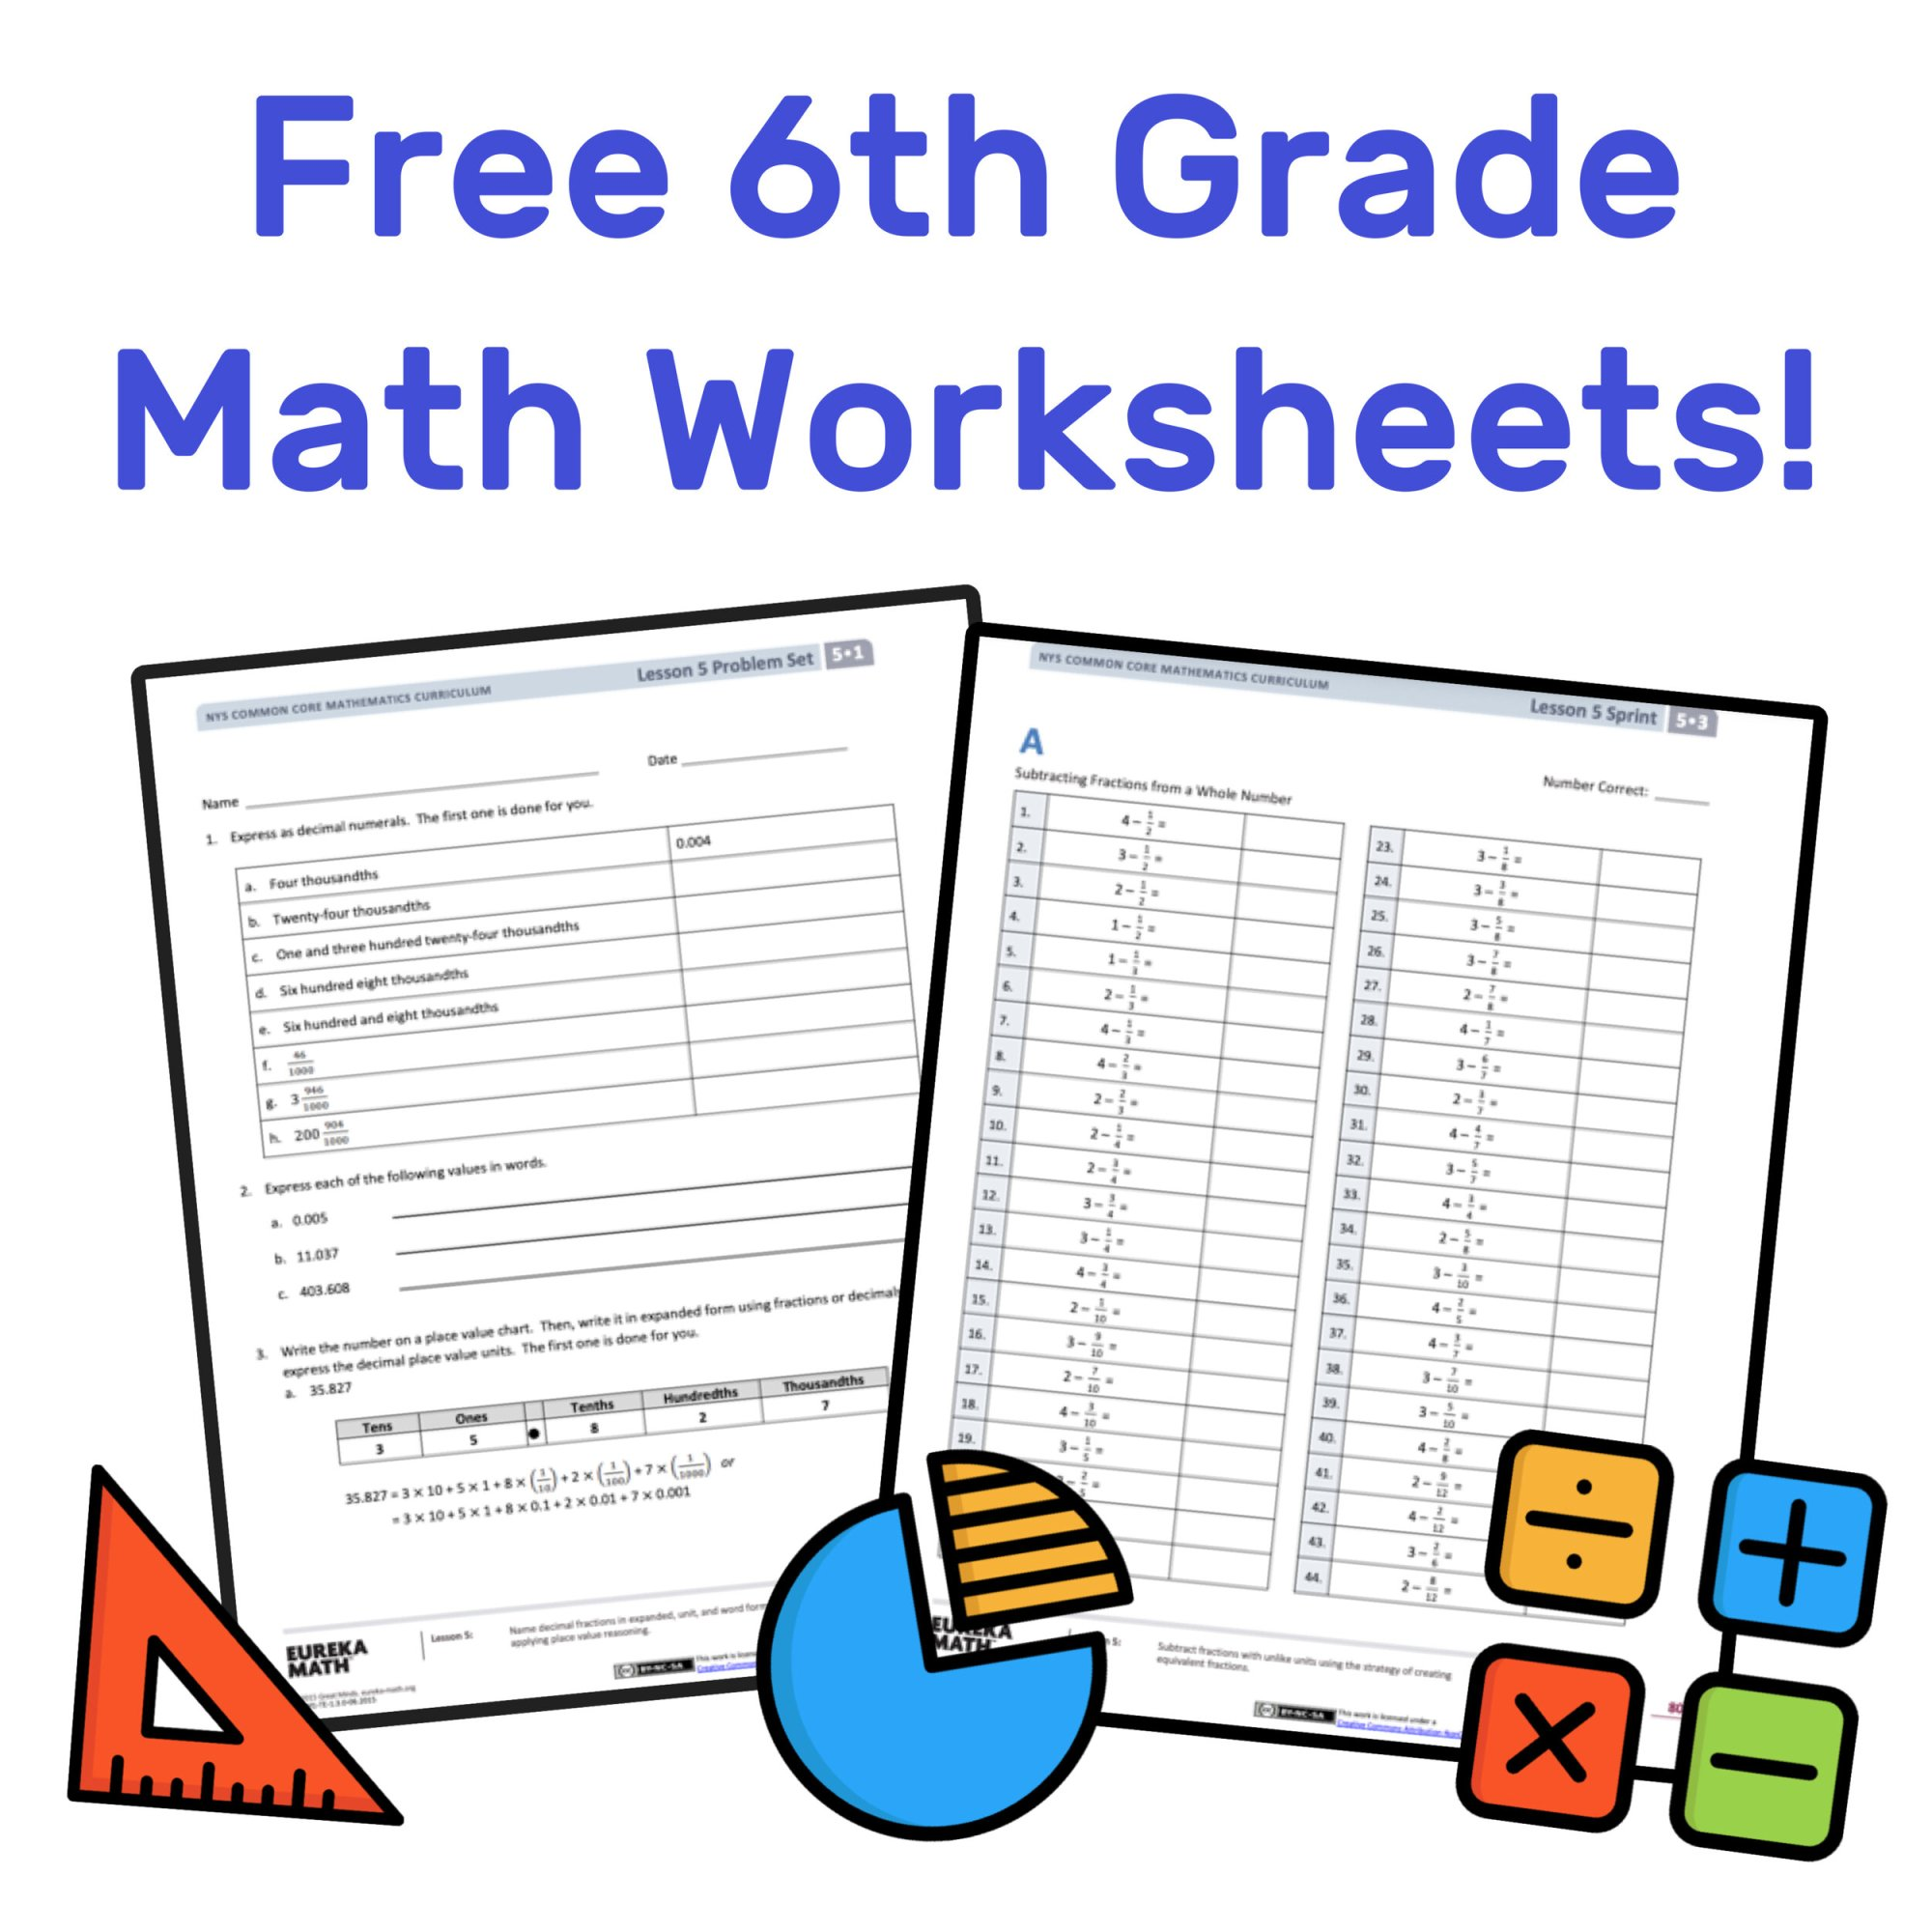 hight resolution of The Best Free 6th Grade Math Resources: Complete List! — Mashup Math